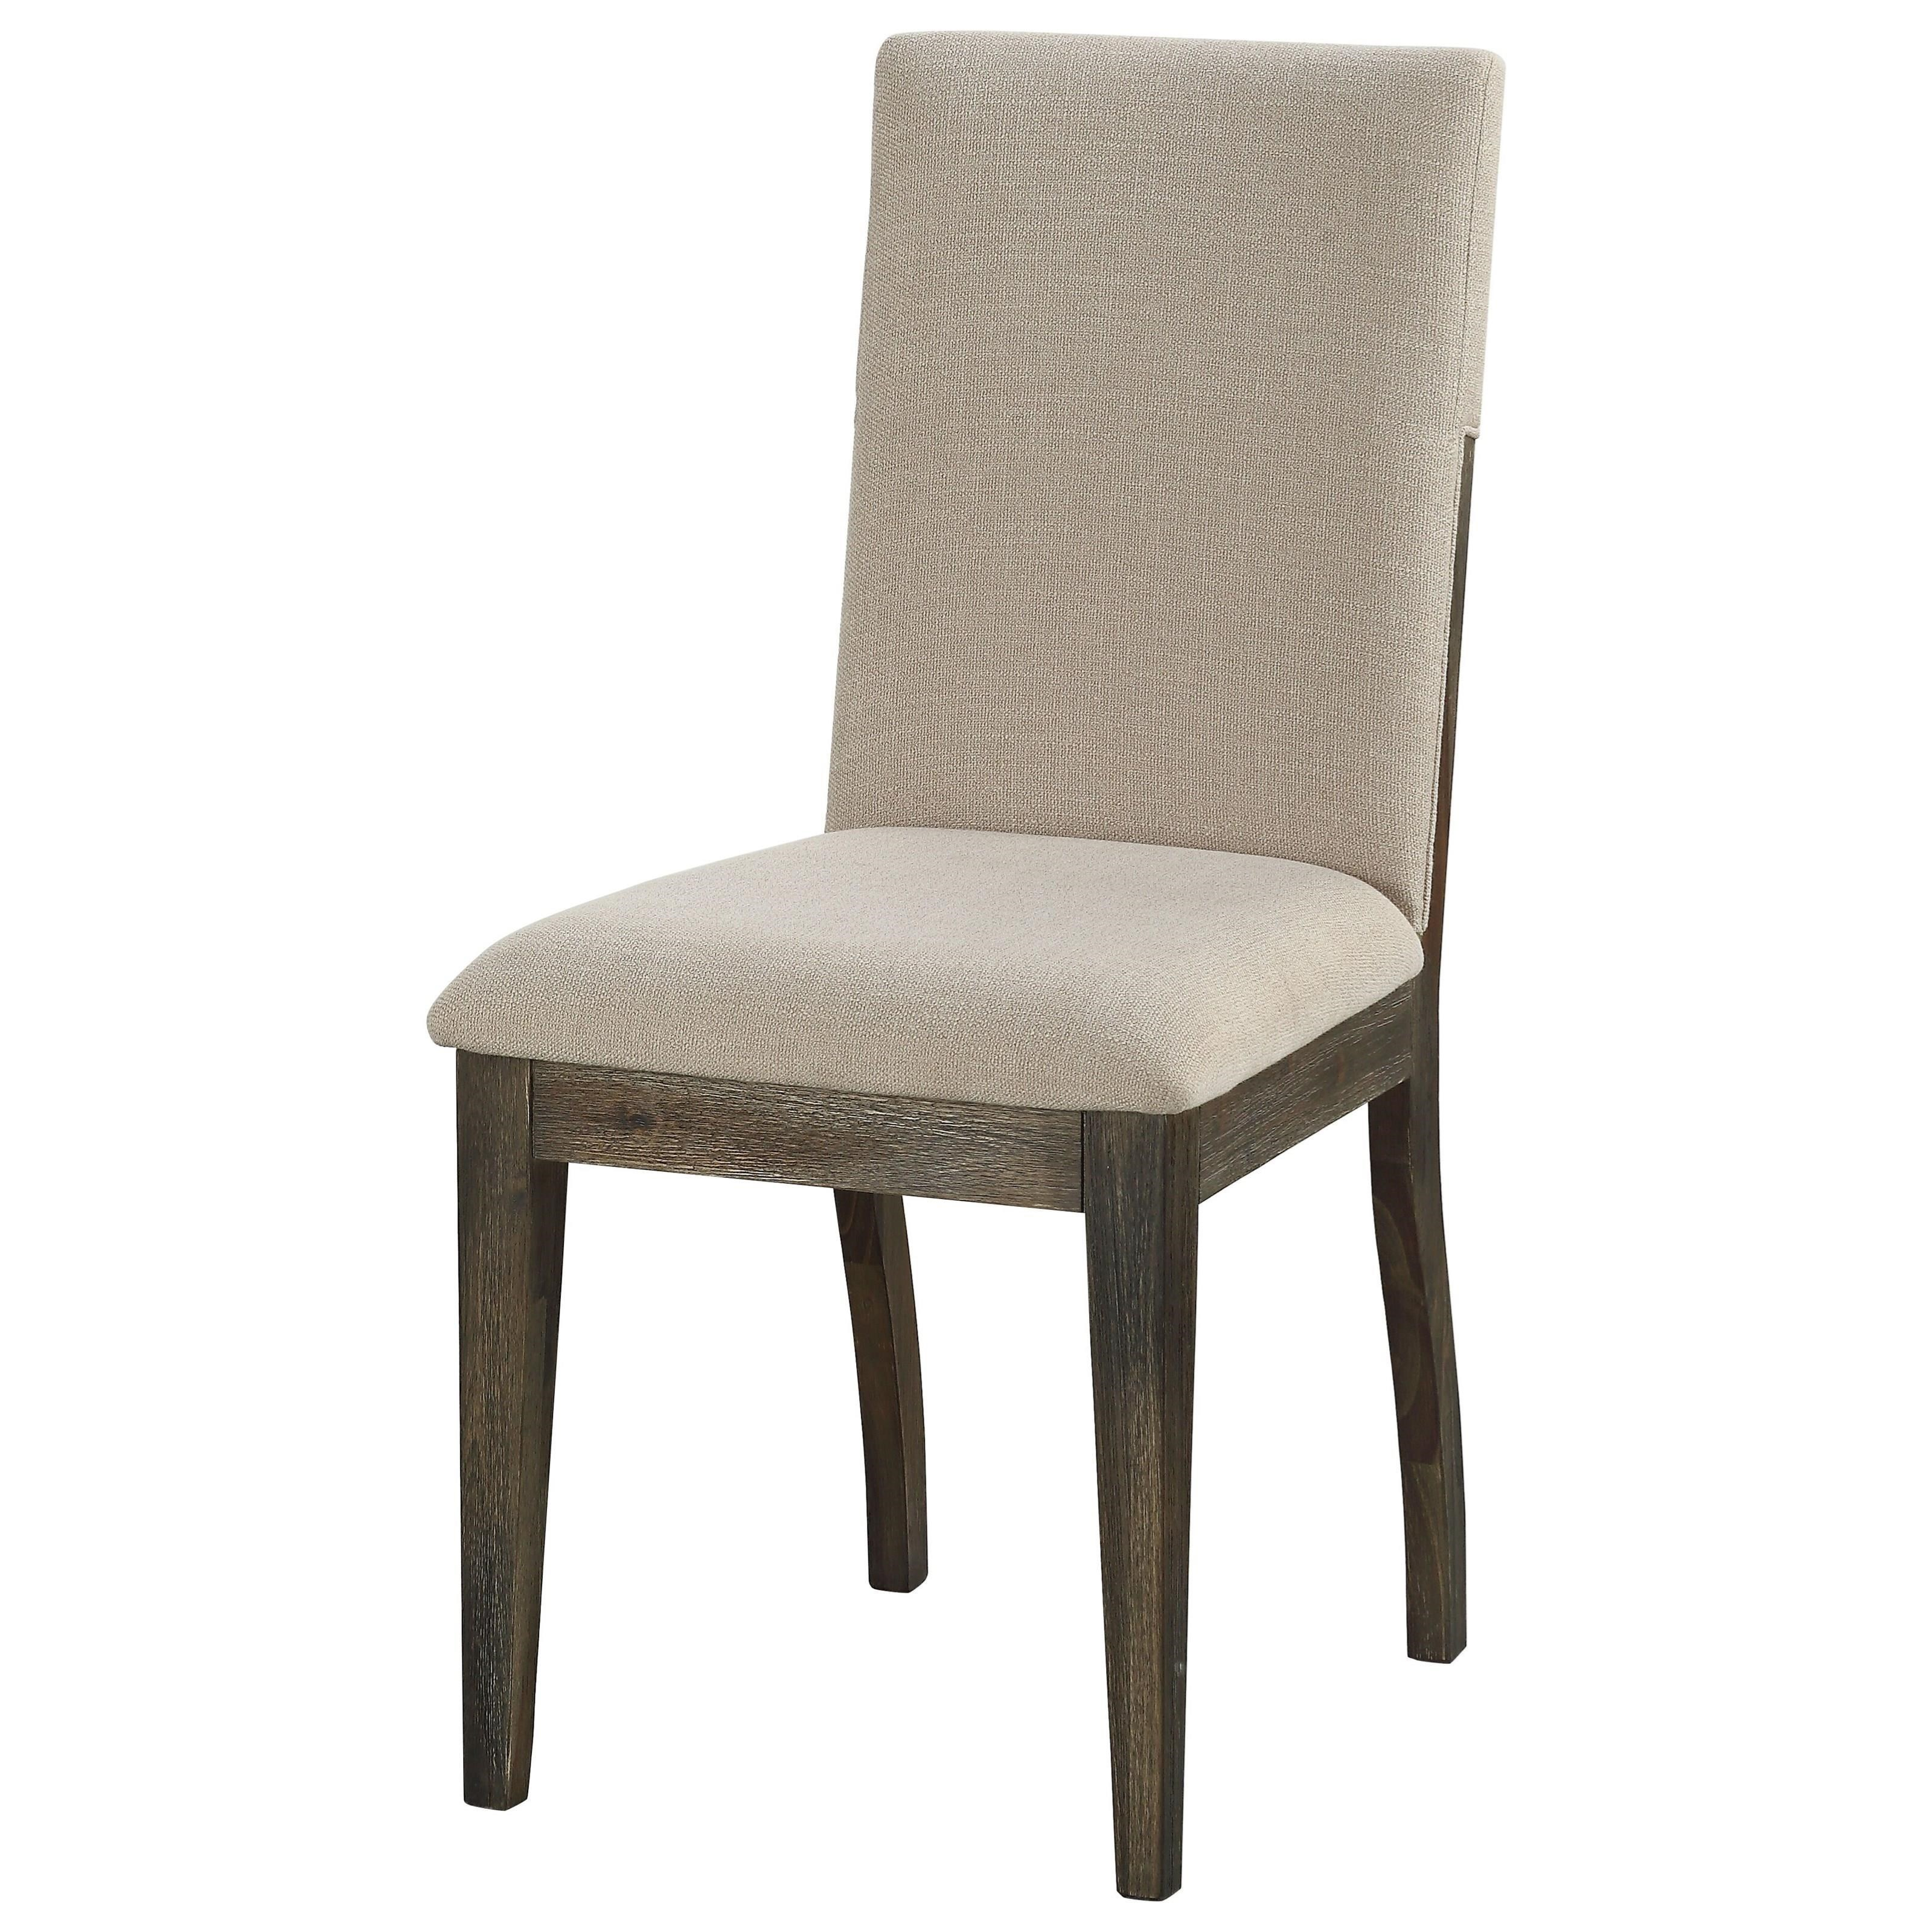 Aspen Court Dining Side Chair by Coast to Coast Imports at Baer's Furniture